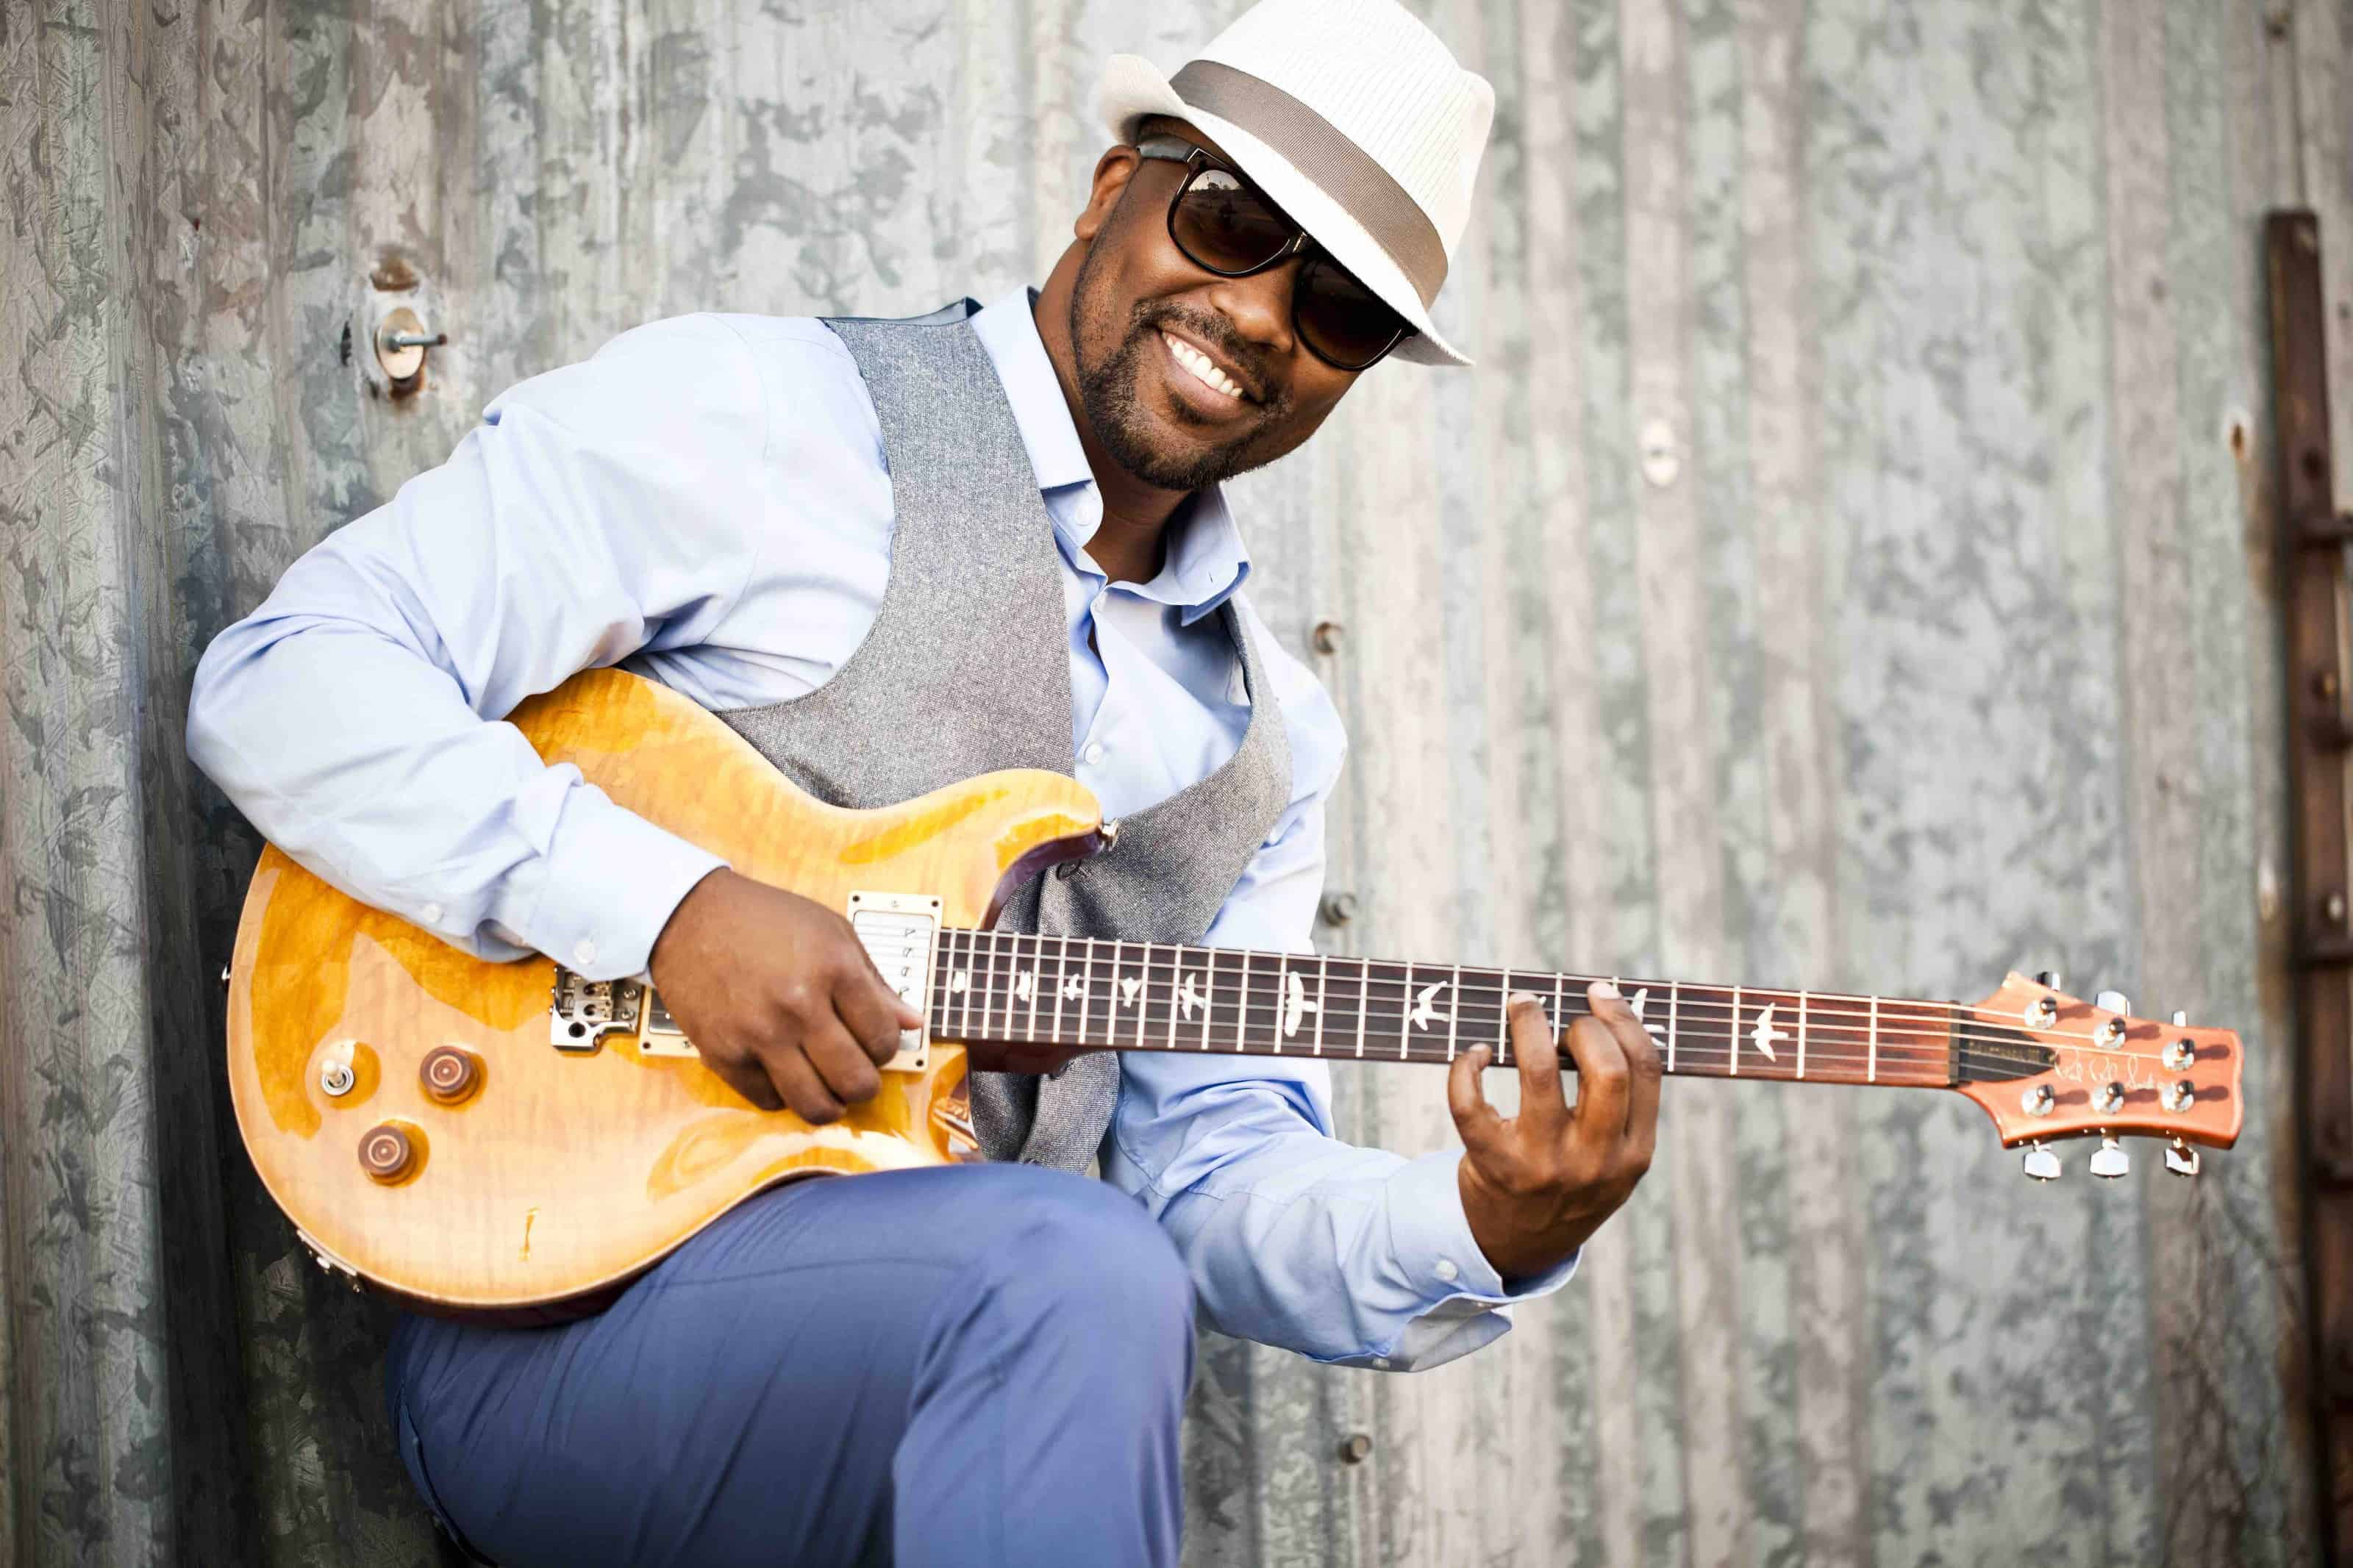 Zivanai Masango and his band Pachedu will perform at Williams College at 8 p.m. on Friday. Image courtesy of Williams College